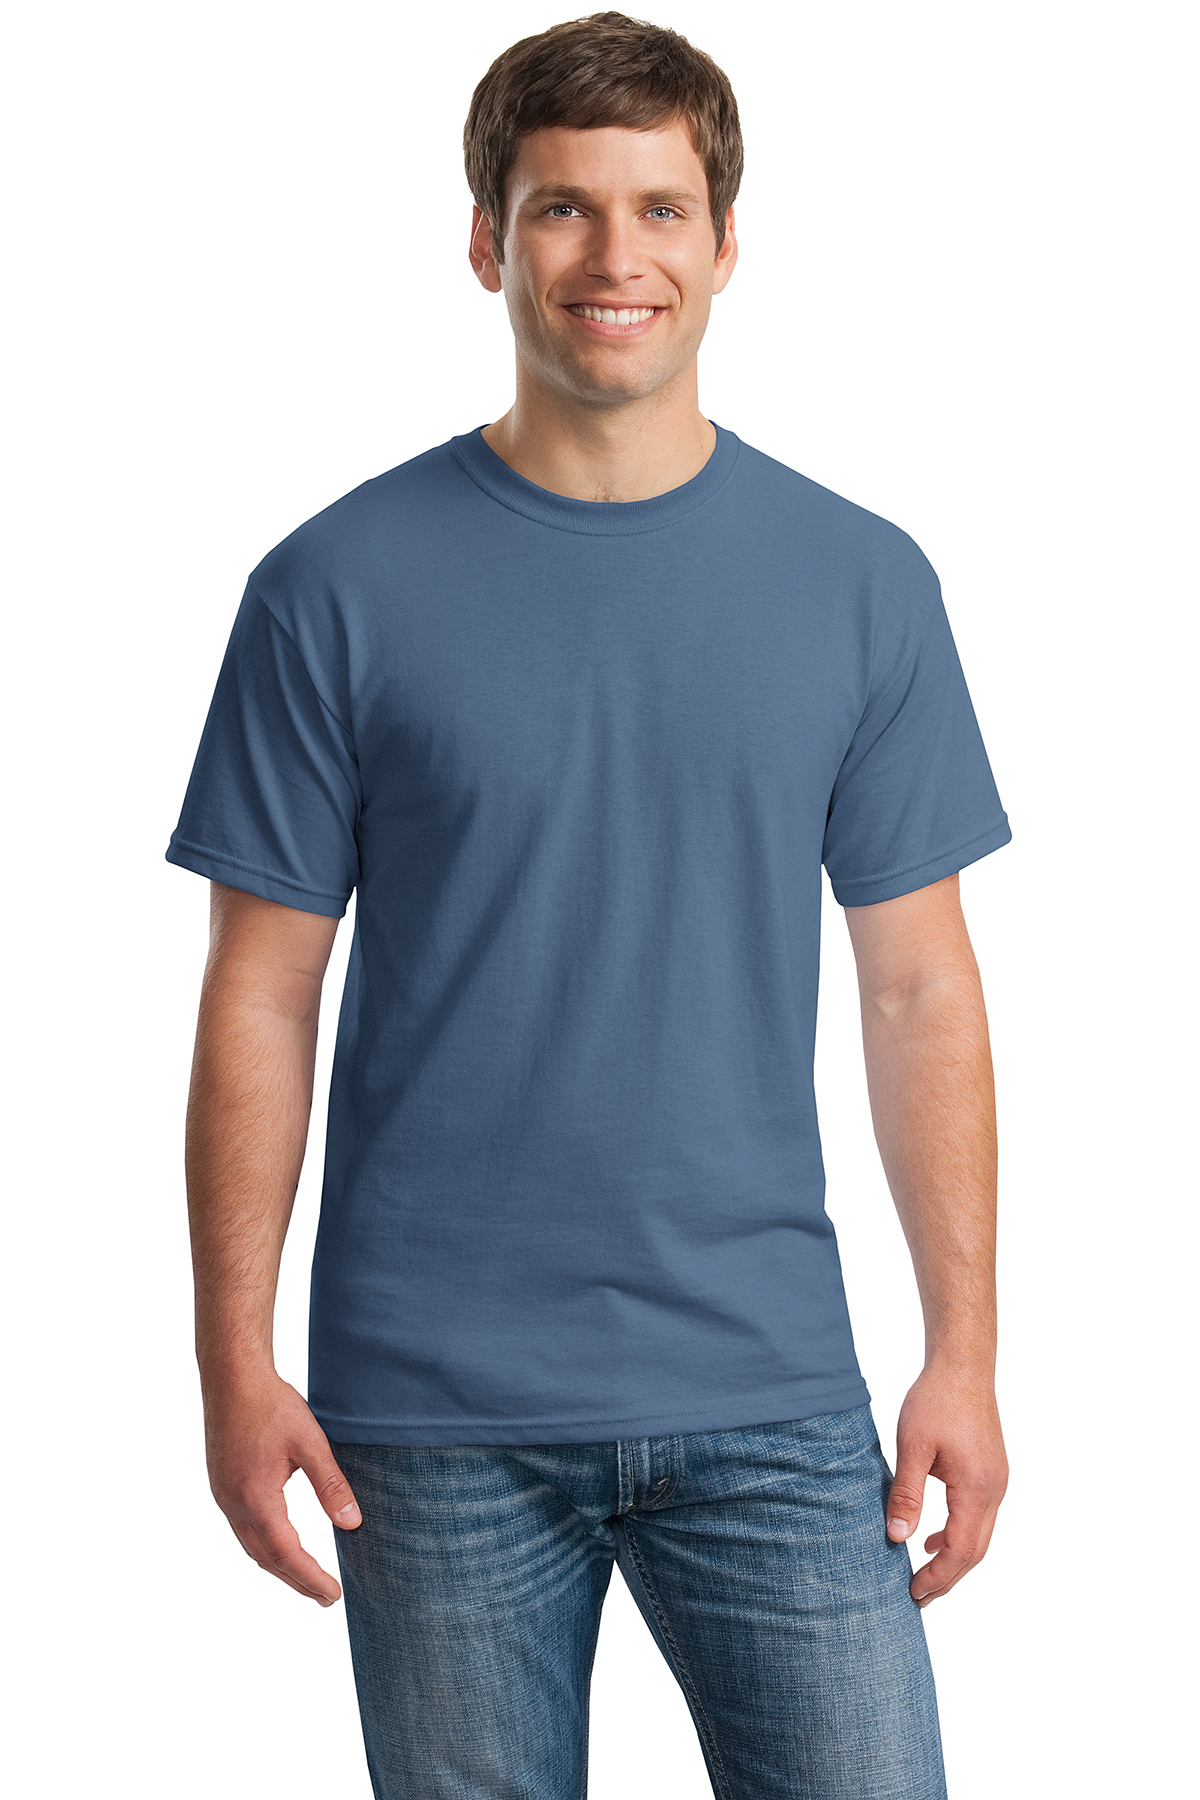 ... Gildan® - Heavy Cotton™ 100% Cotton T-Shirt. A maximum of 8 logos have  been uploaded. Please remove a logo from My Logos to continue